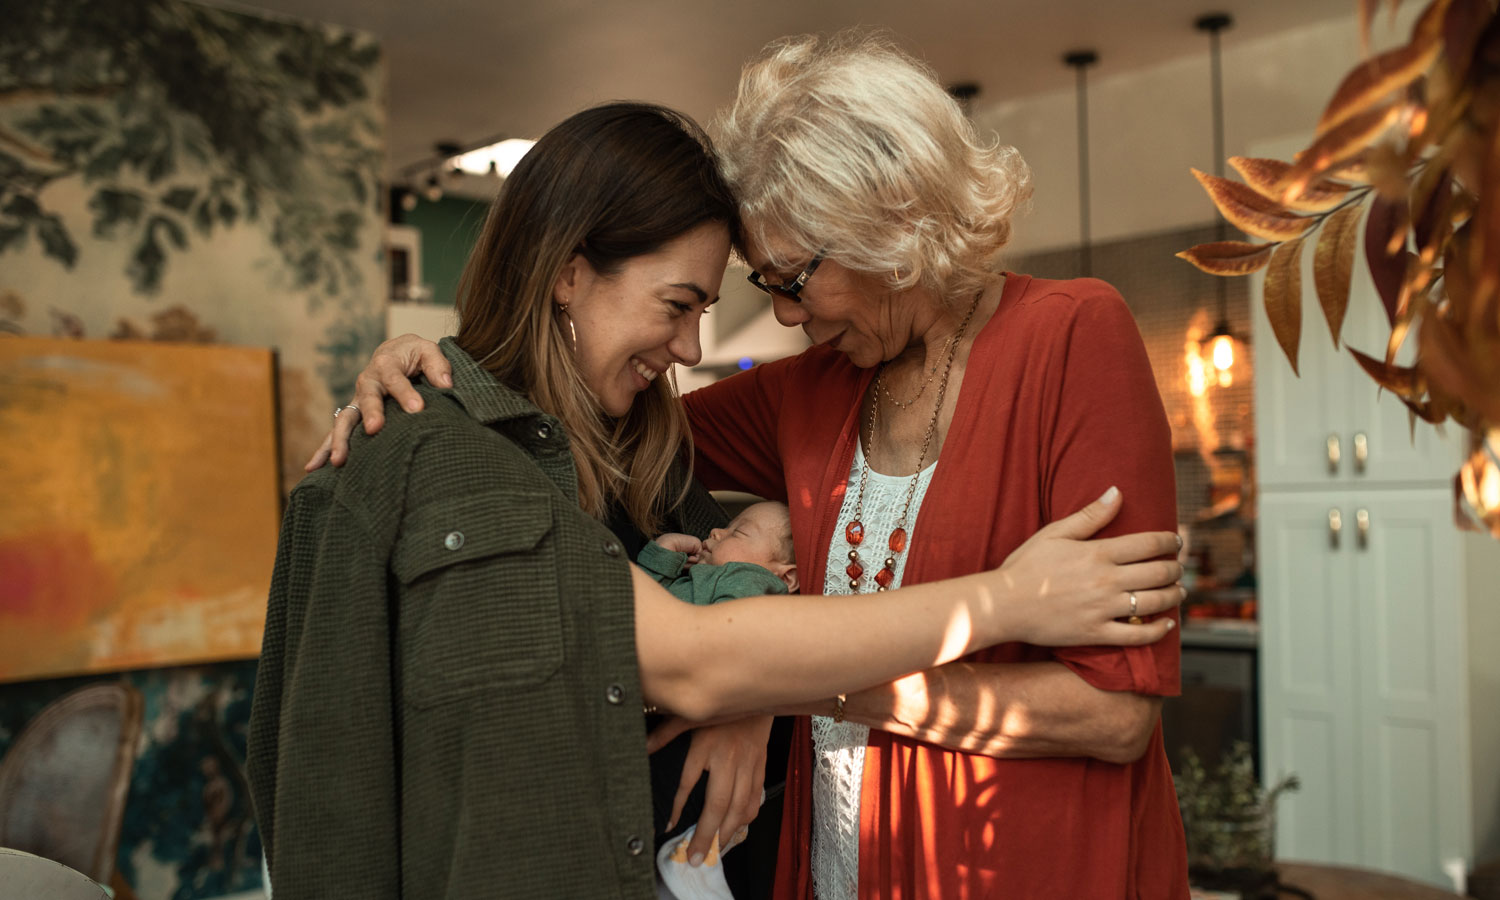 Three generations, with a grandma, new mom and baby, embracing in a hug